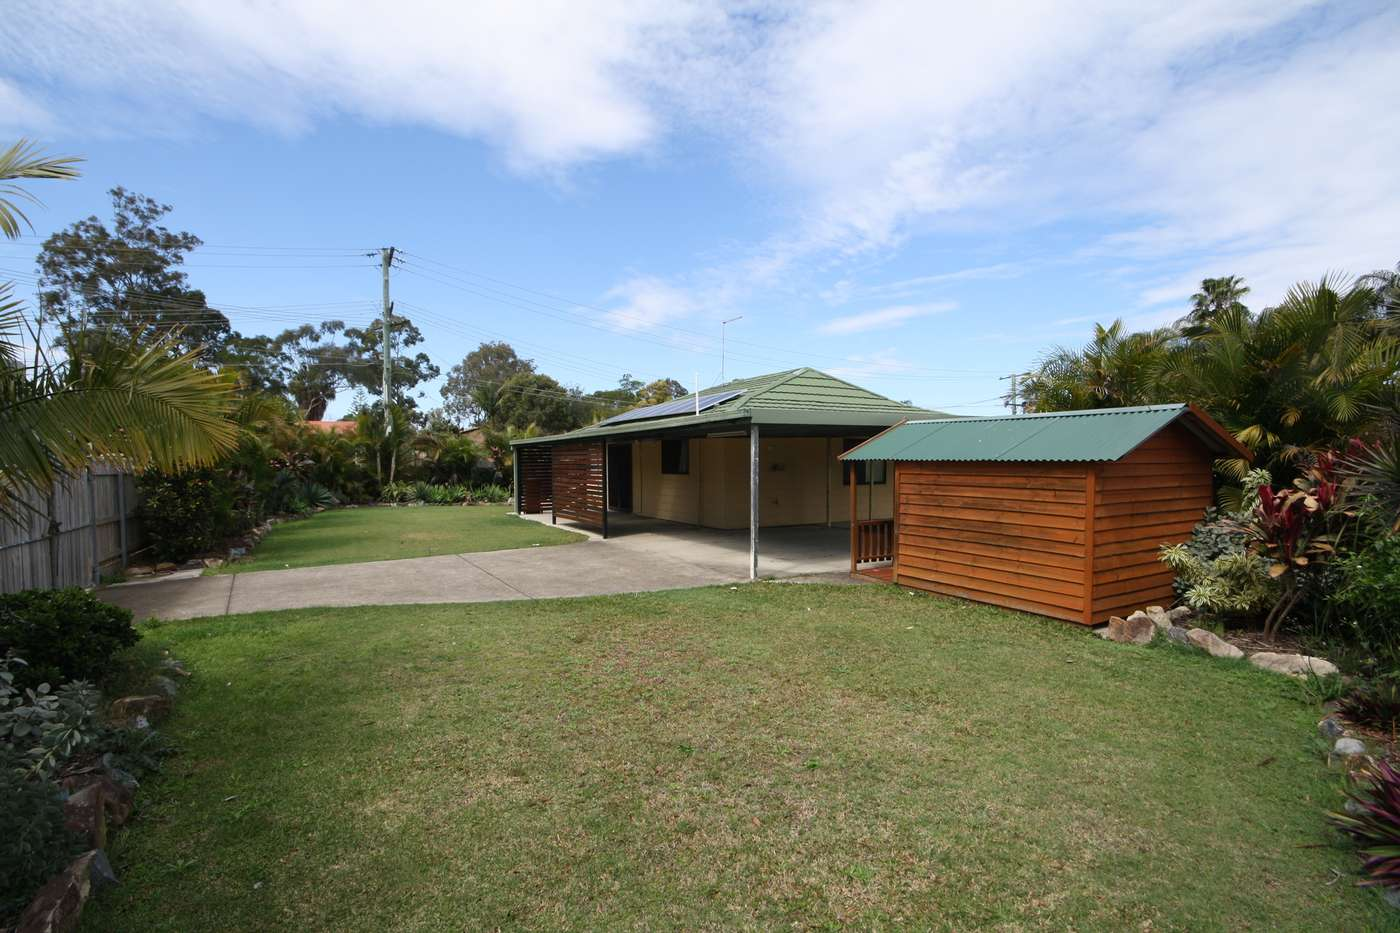 Main view of Homely house listing, 69 Anchusa Street, Kingston, QLD 4114